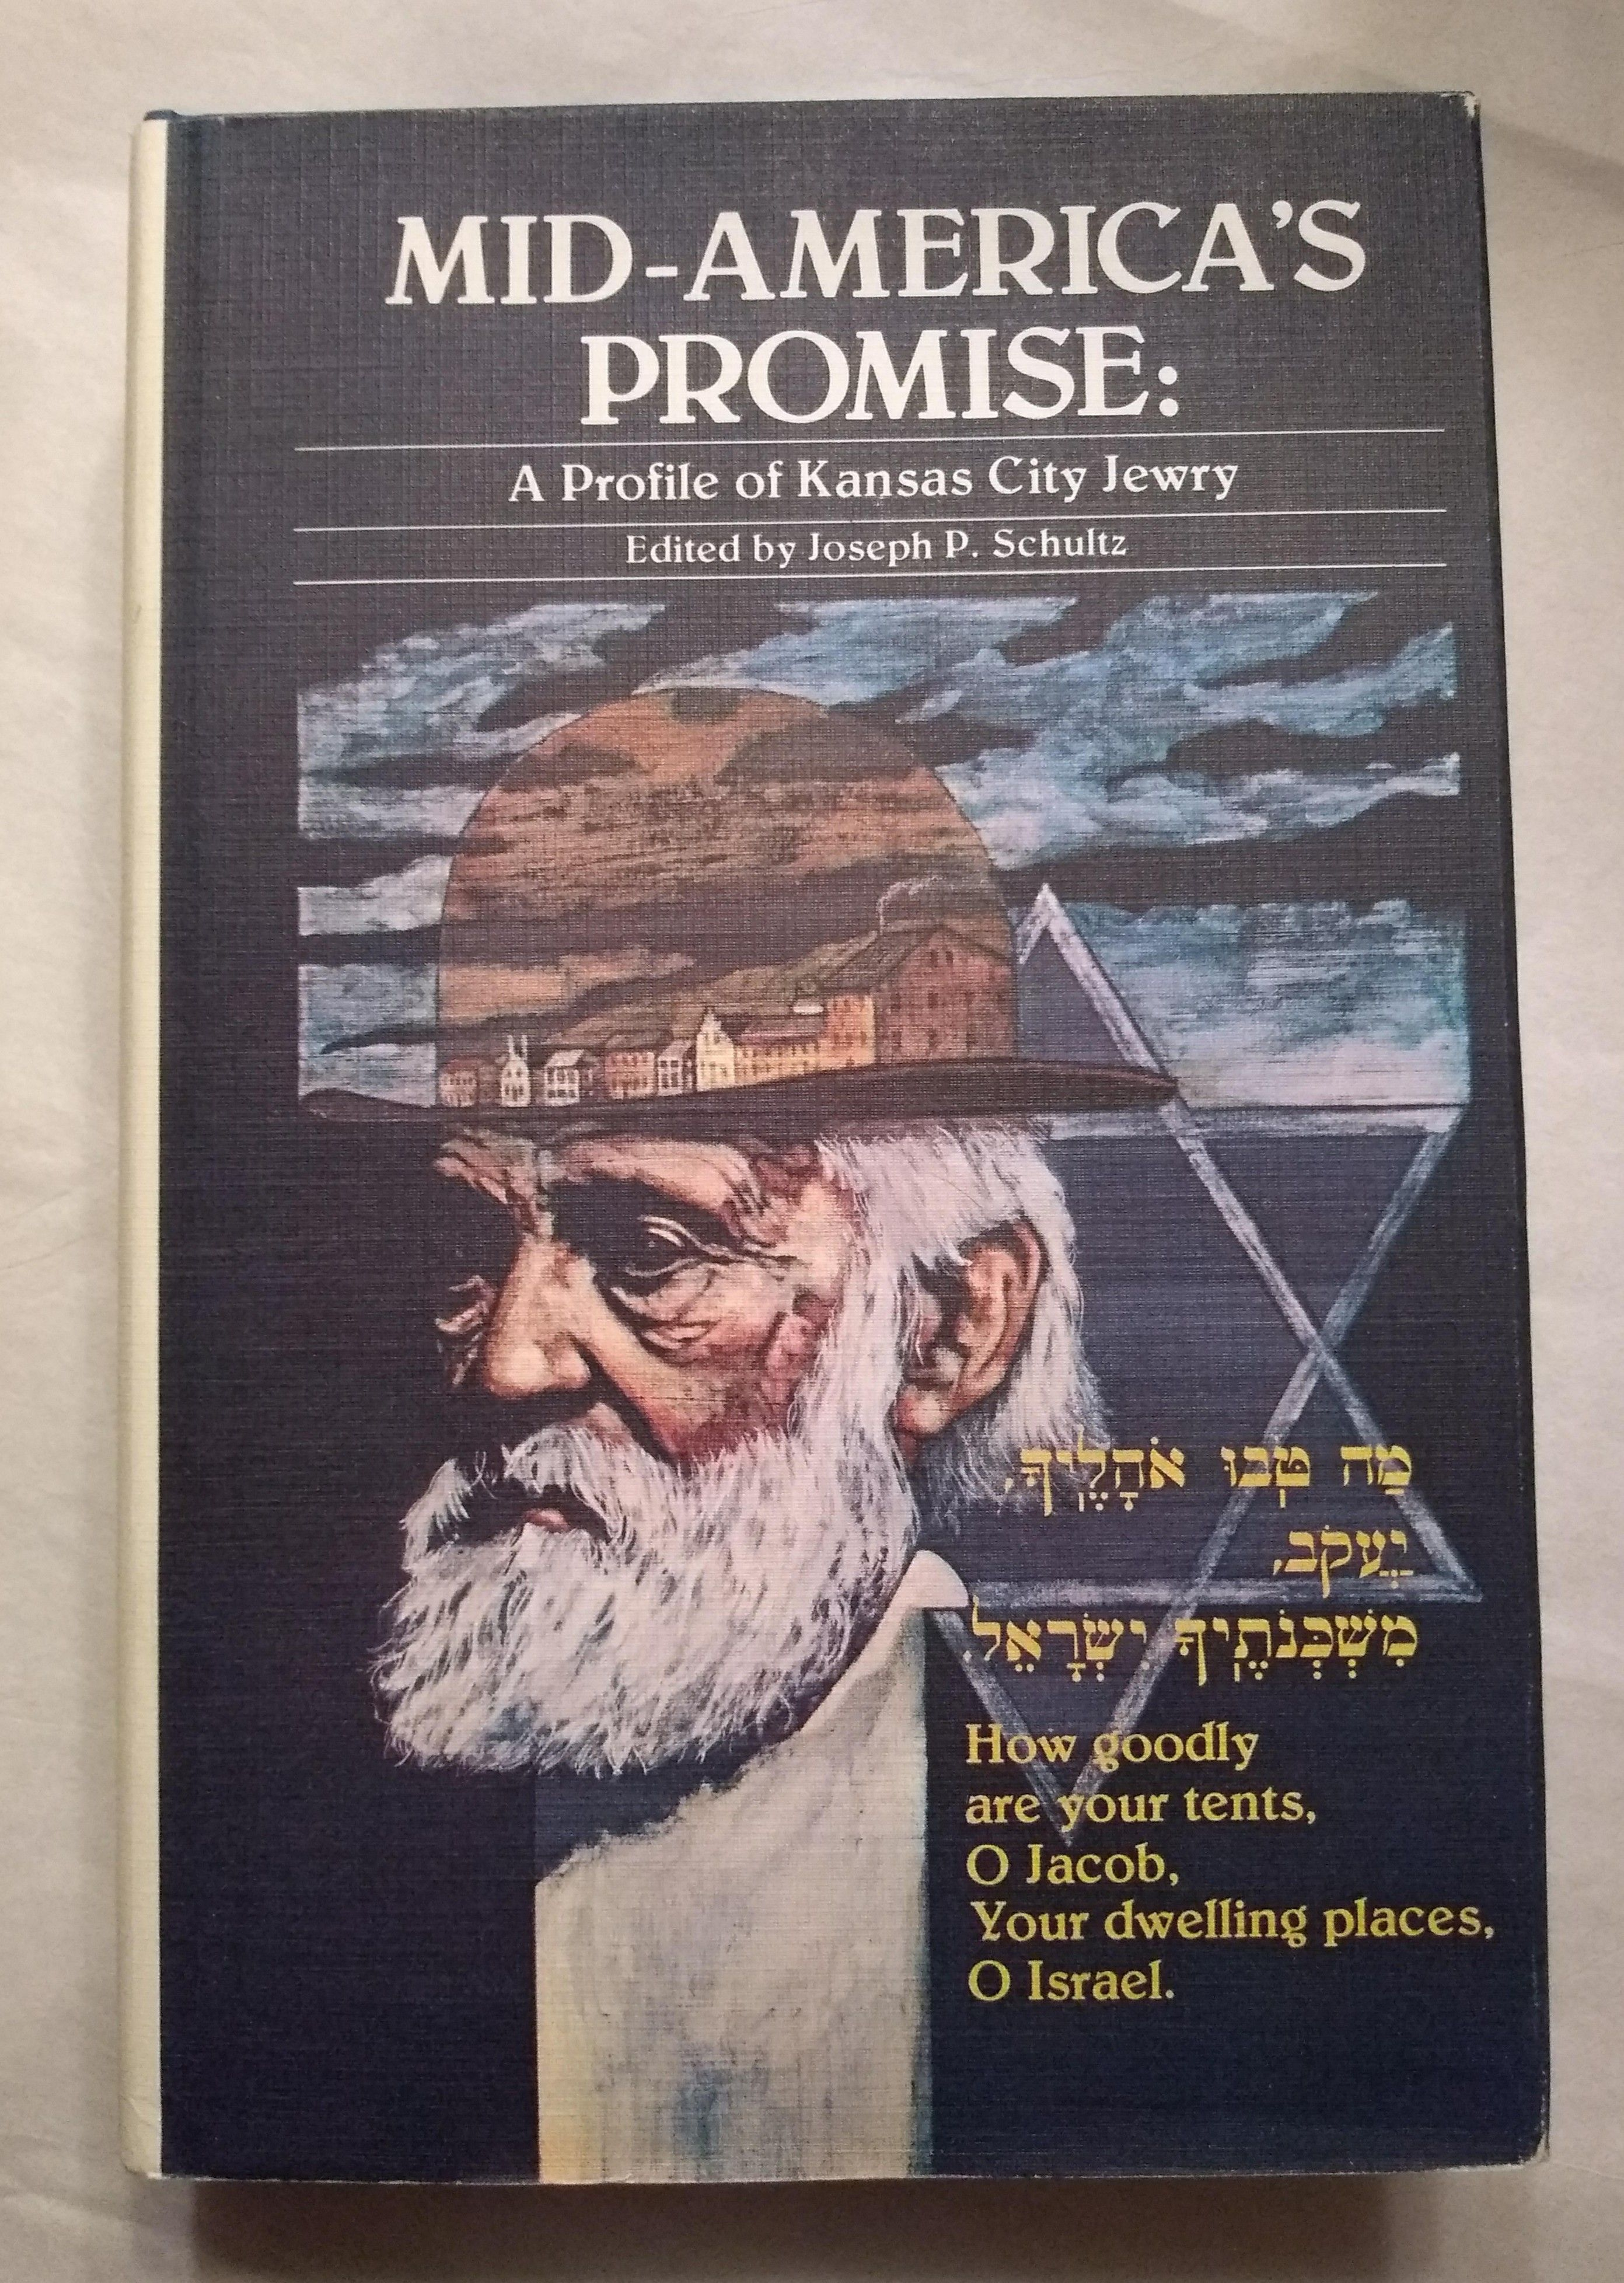 Mid-America's Promise: A Profile of Kansas City Jewry